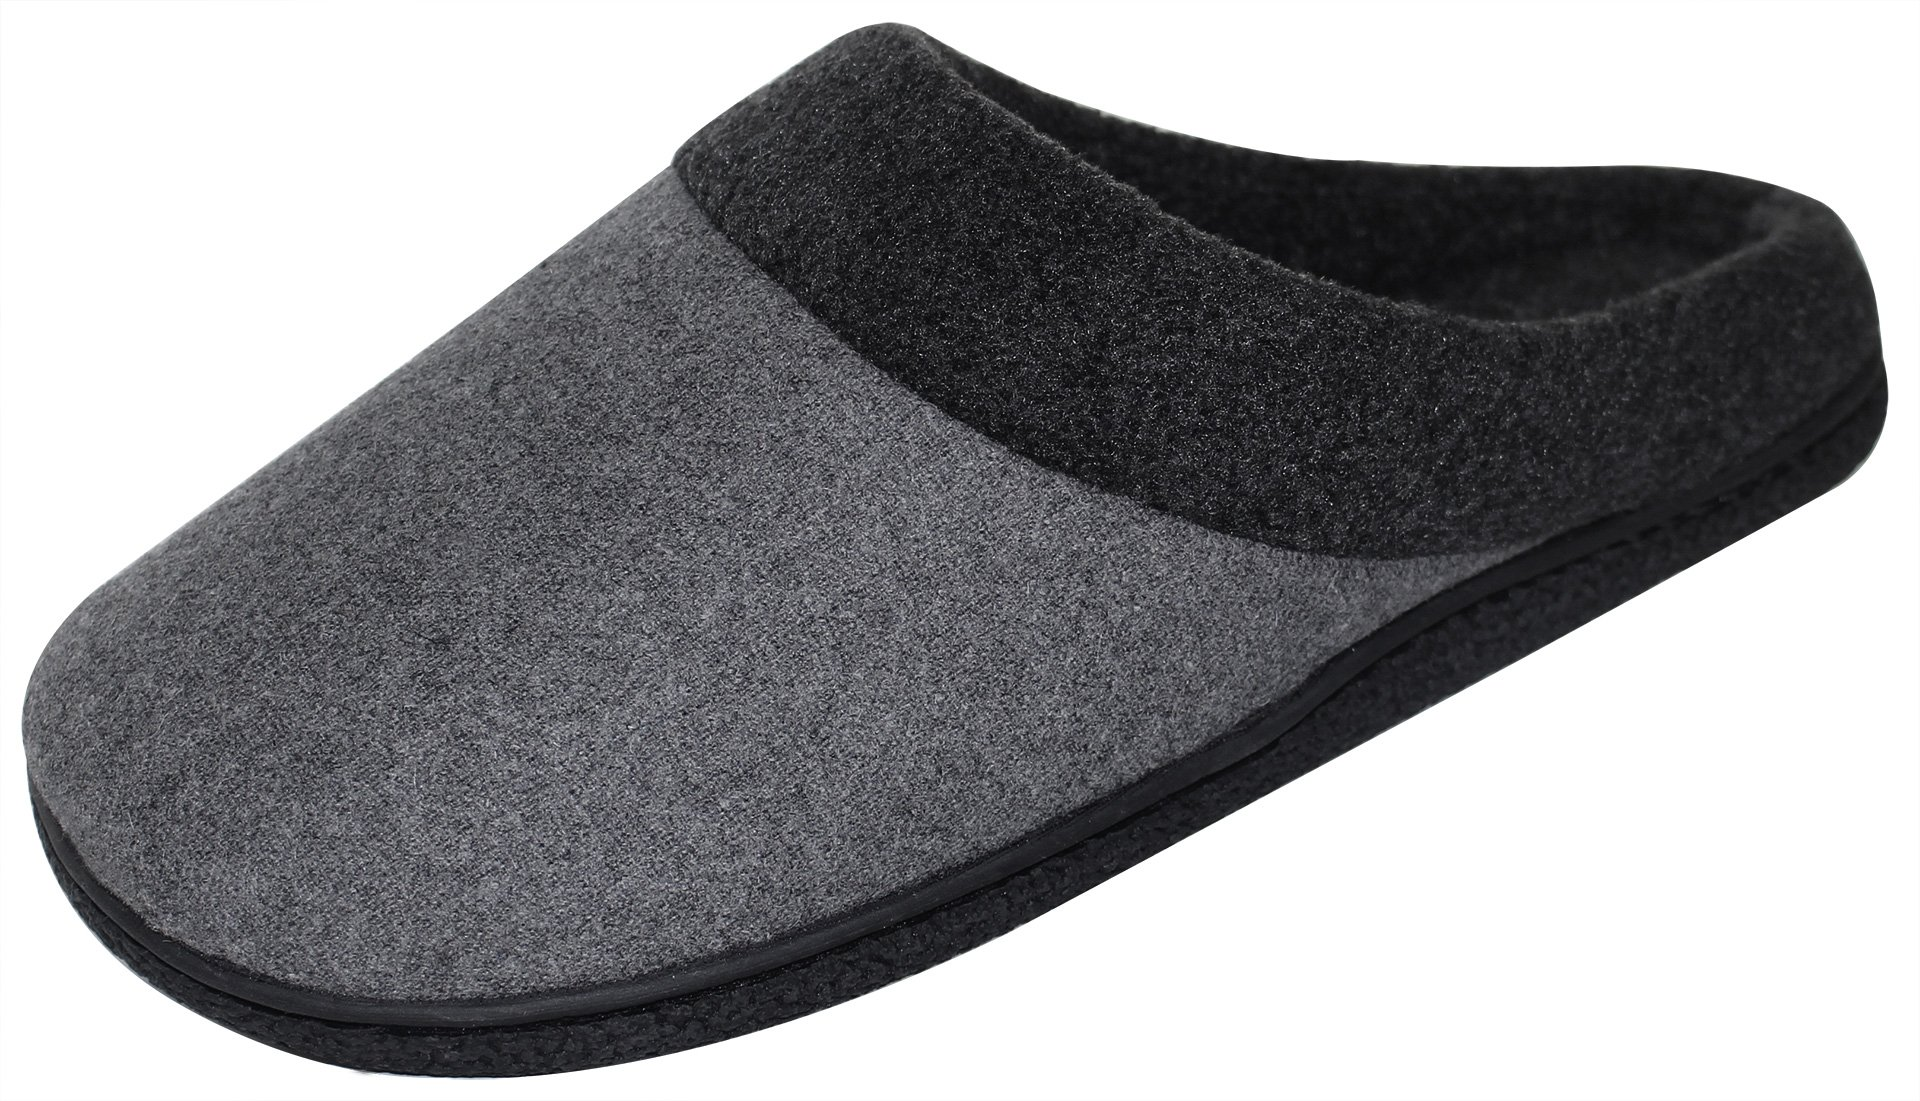 HomeIdeas Men's Woolen Fabric Memory Foam Anti-Slip House Slippers, Spring Summer Breathable Indoor Shoes by HomeIdeas